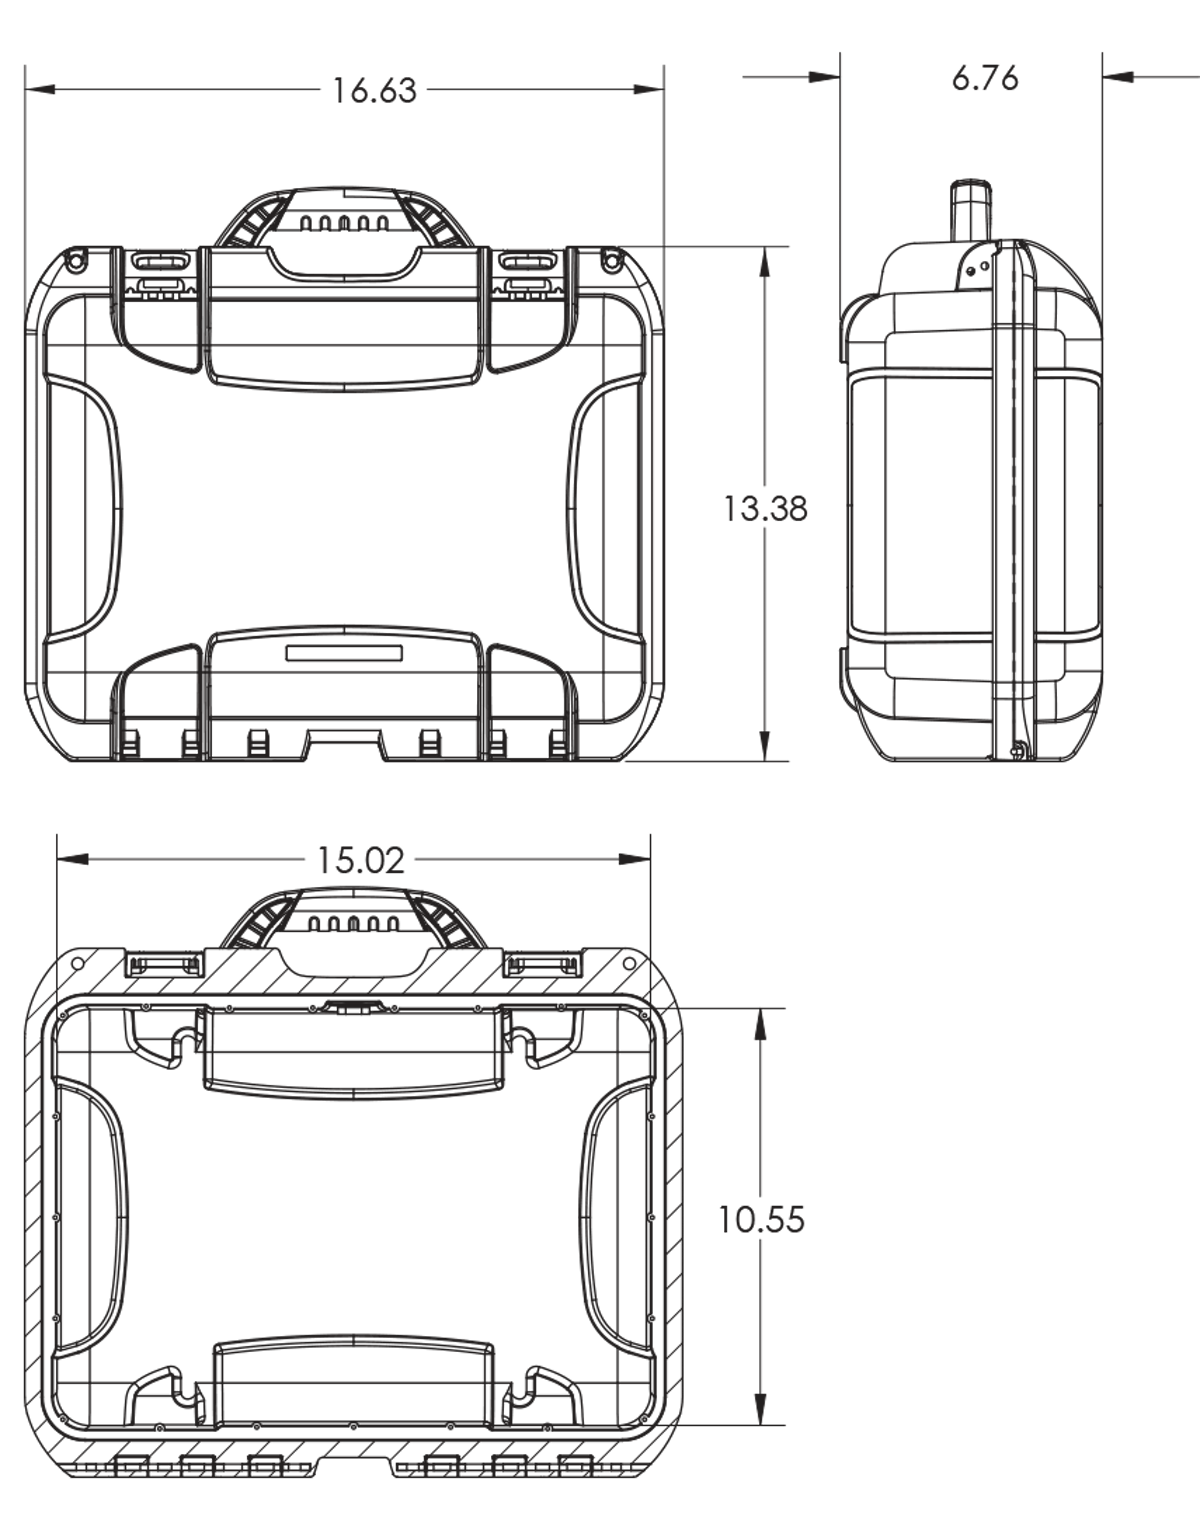 Dimensions of the DJI Mavic Case Hard Case